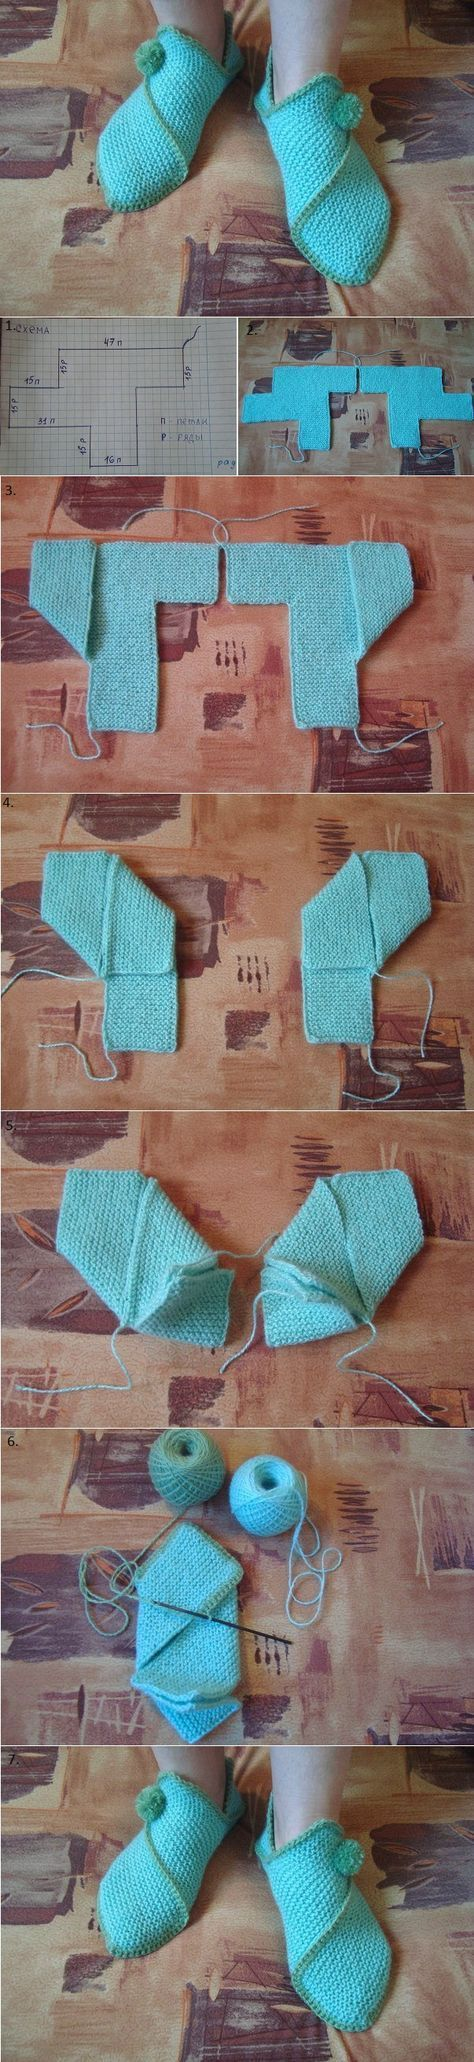 Home Slippers – DIY #häkeln #stricken #DIY